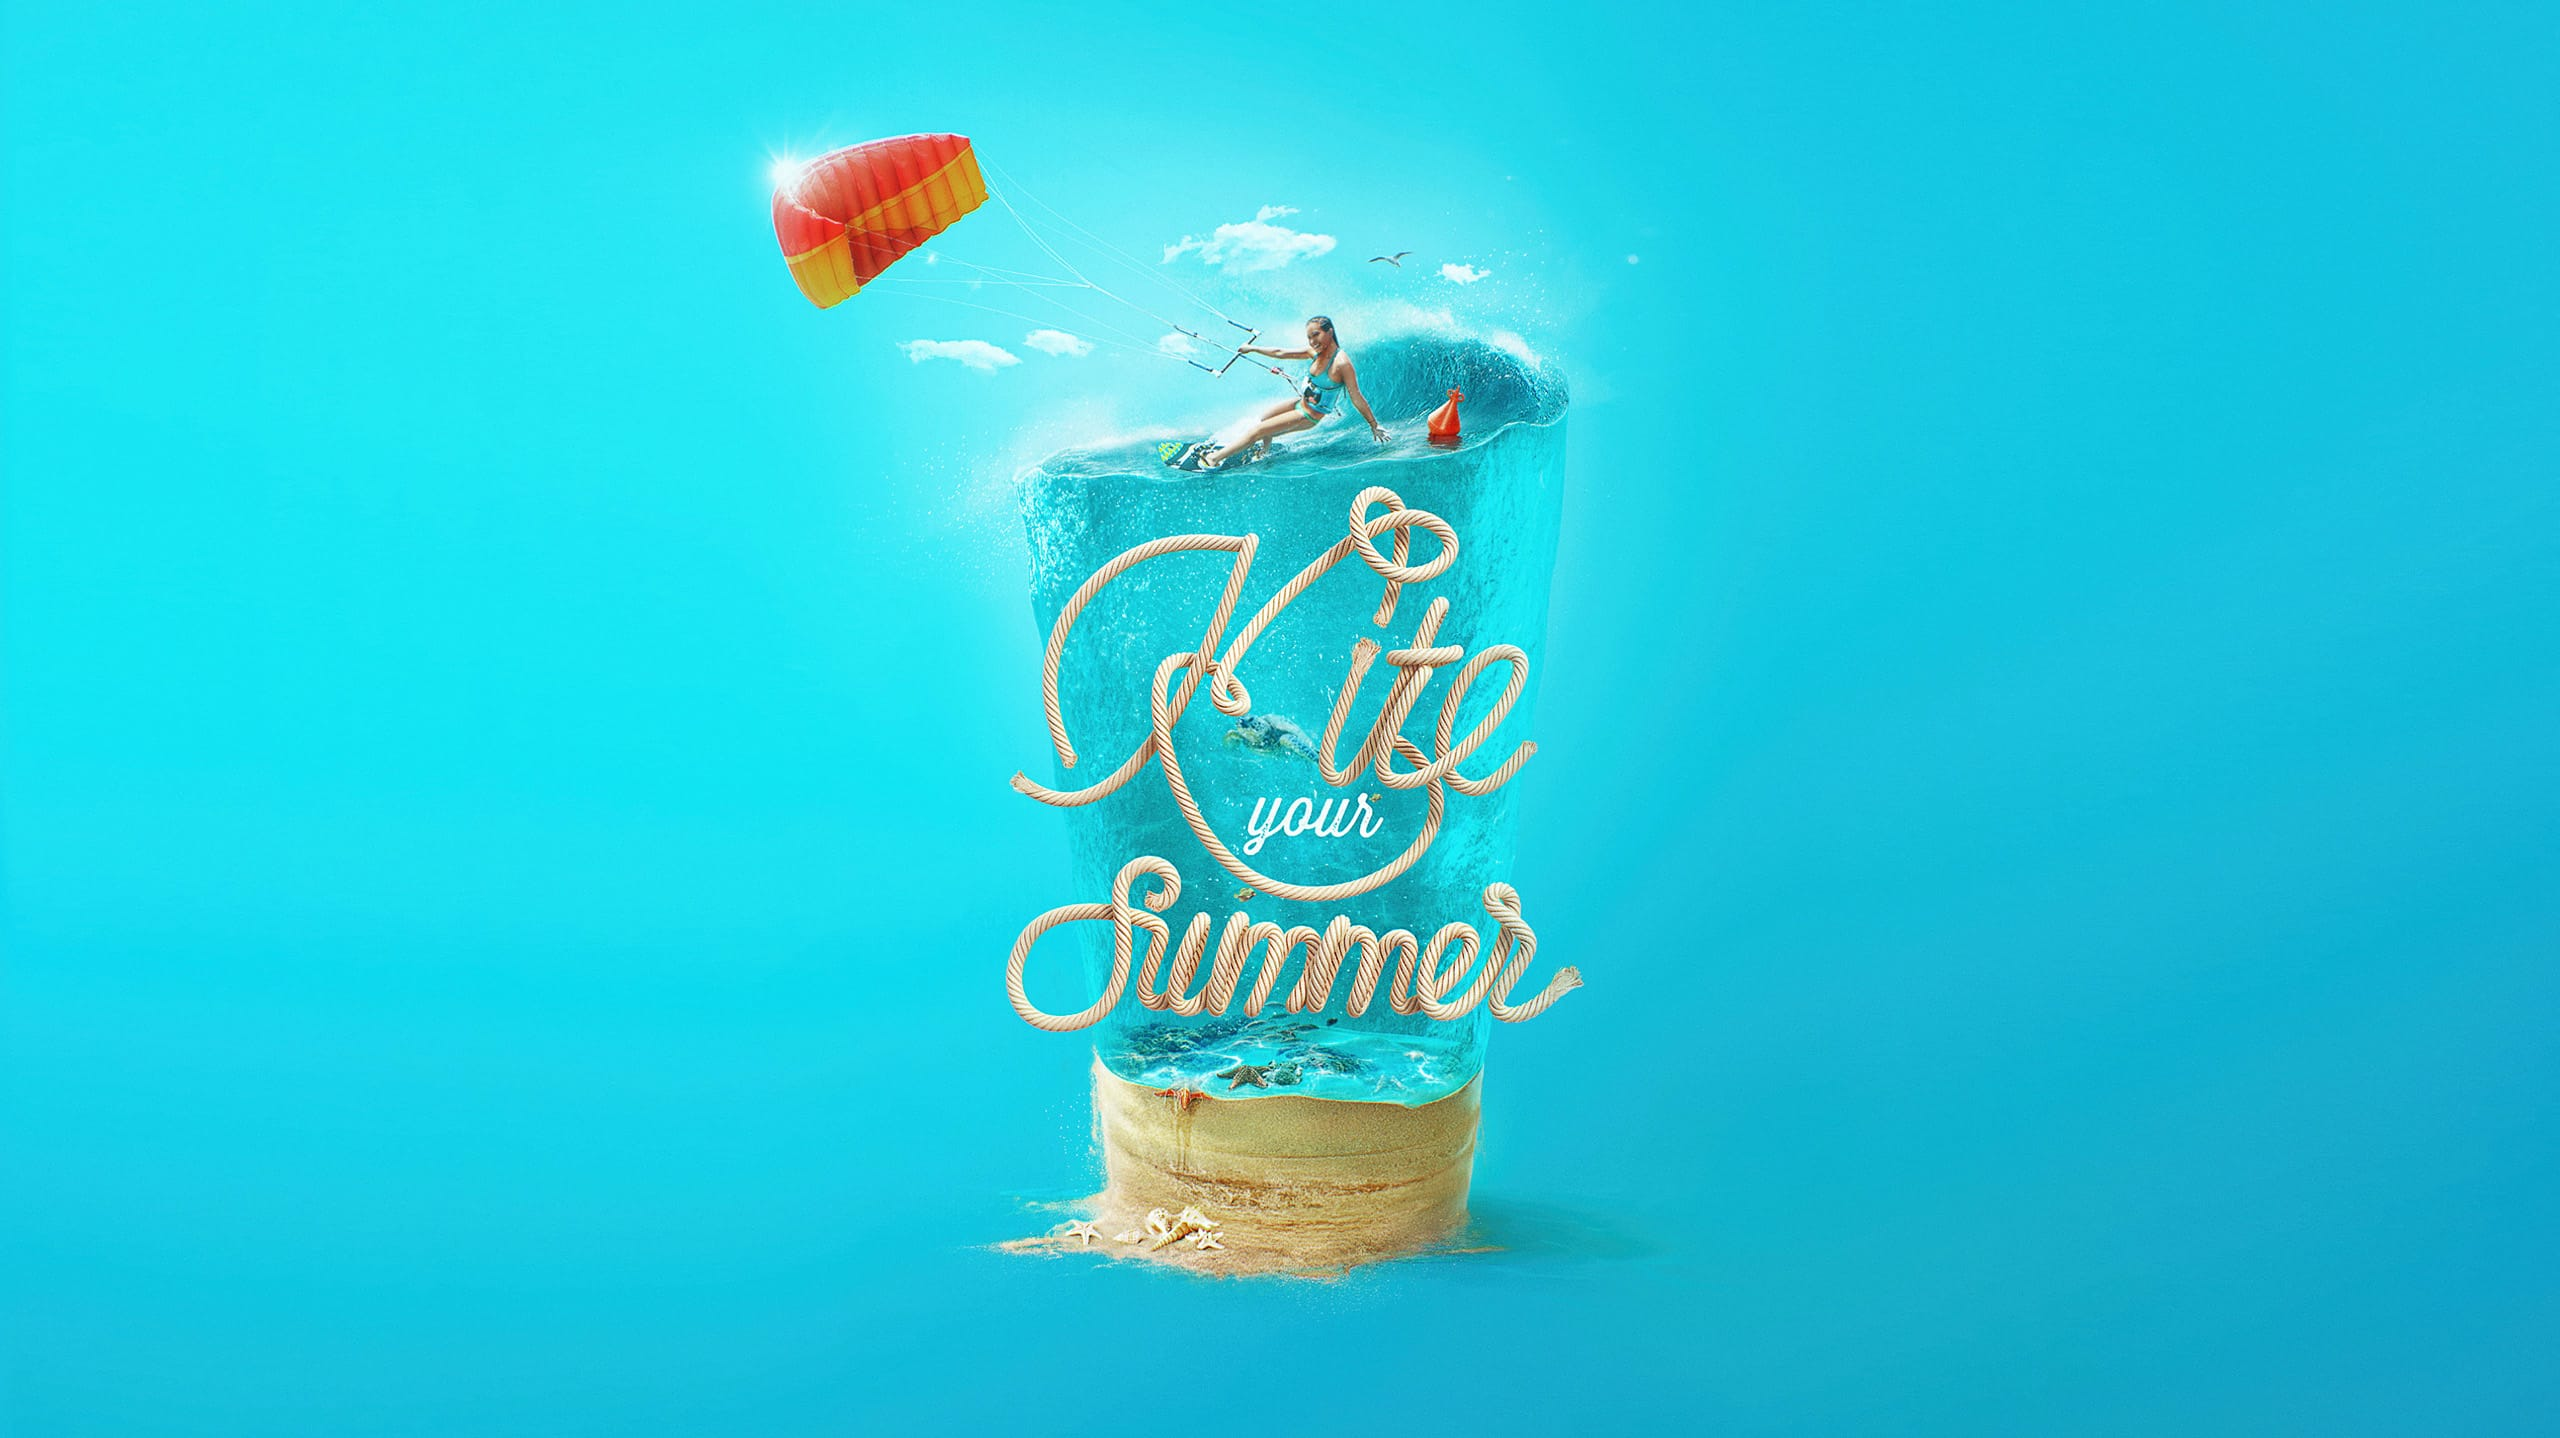 Визуал Kite your summer дизайн Feel Factory